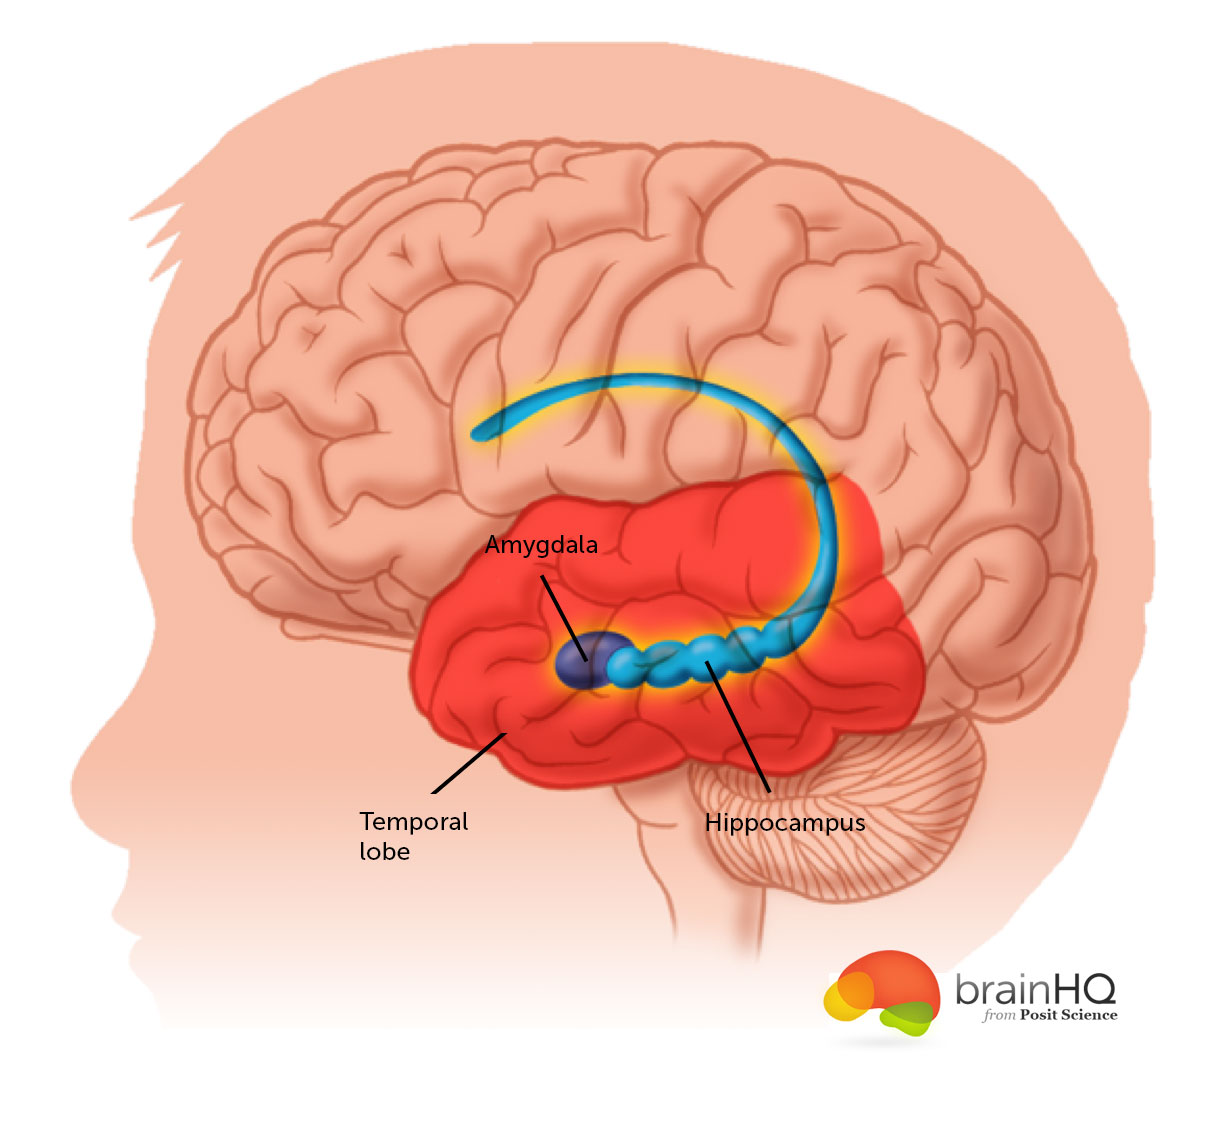 Brain Anatomy Image Gallery Brainhq From Posit Science